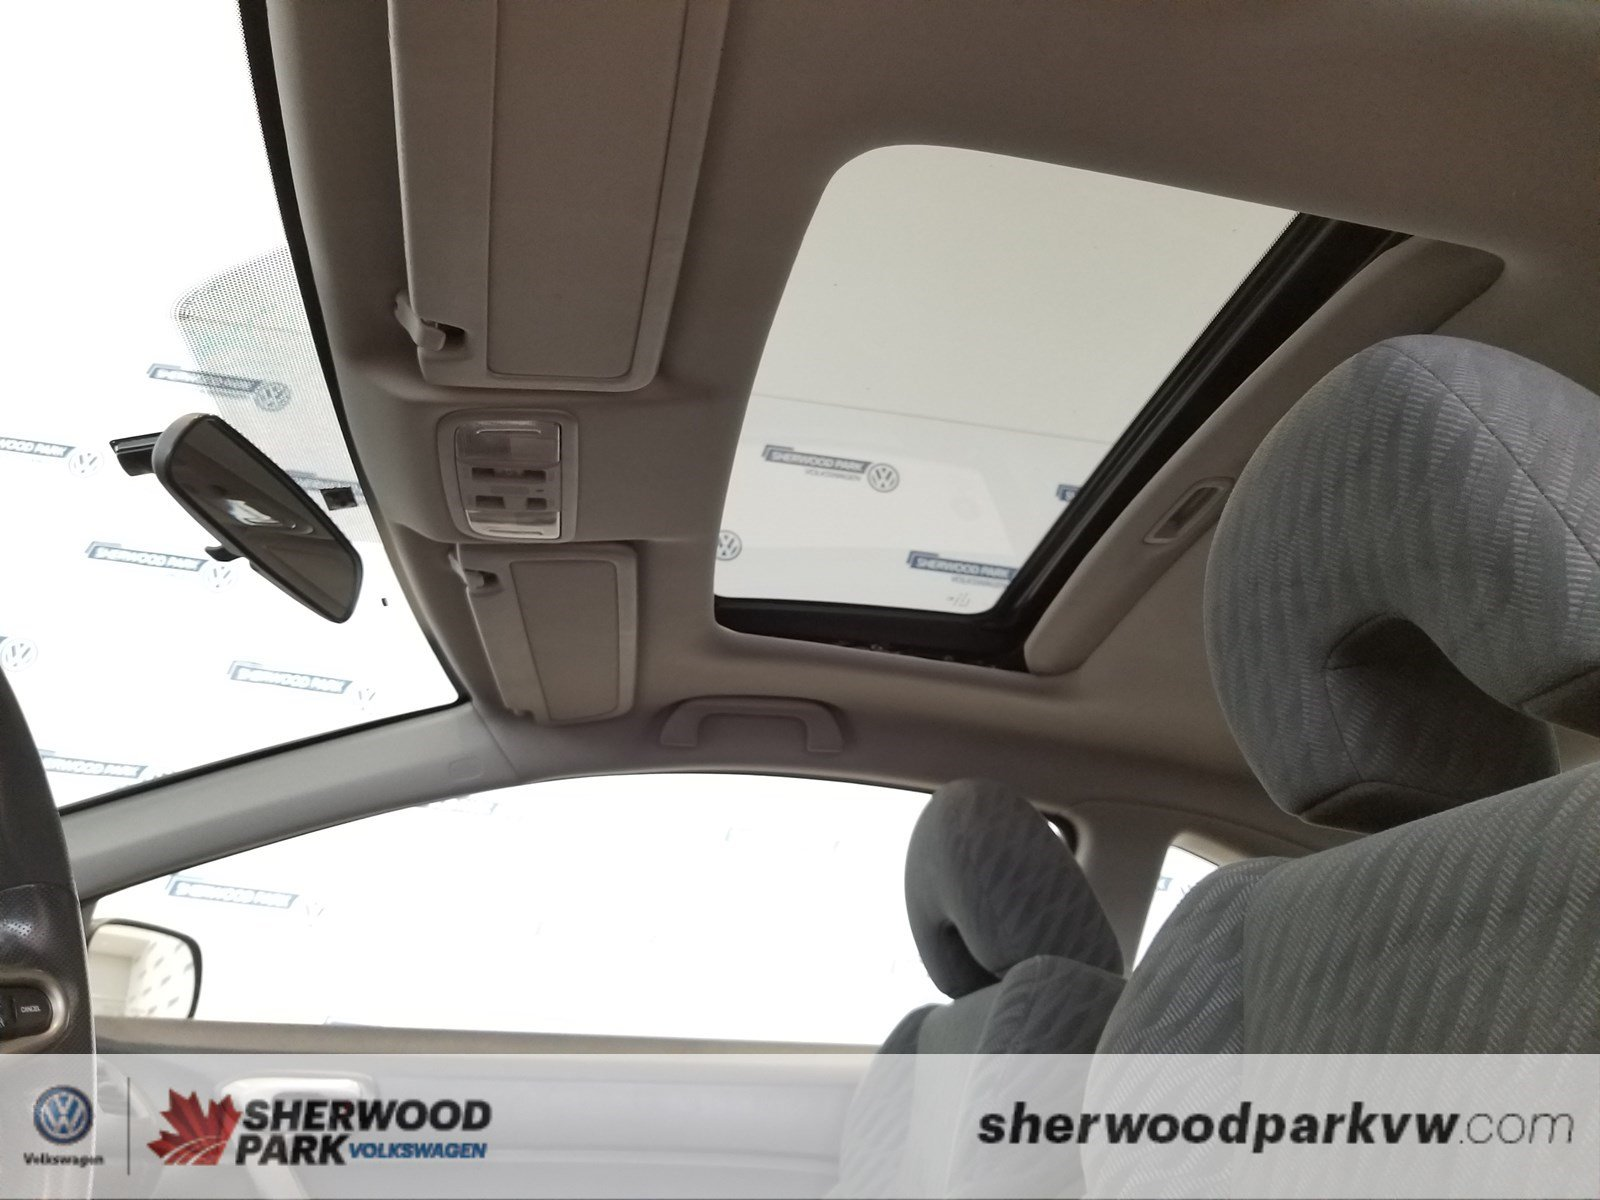 Pre Owned 2010 Honda Civic Cpe Lx 2dr Car In Sherwood Park Pw0517a Super Beetle Macpherson Strut Front End Exploded Diagram Posted Sun Volkswagen